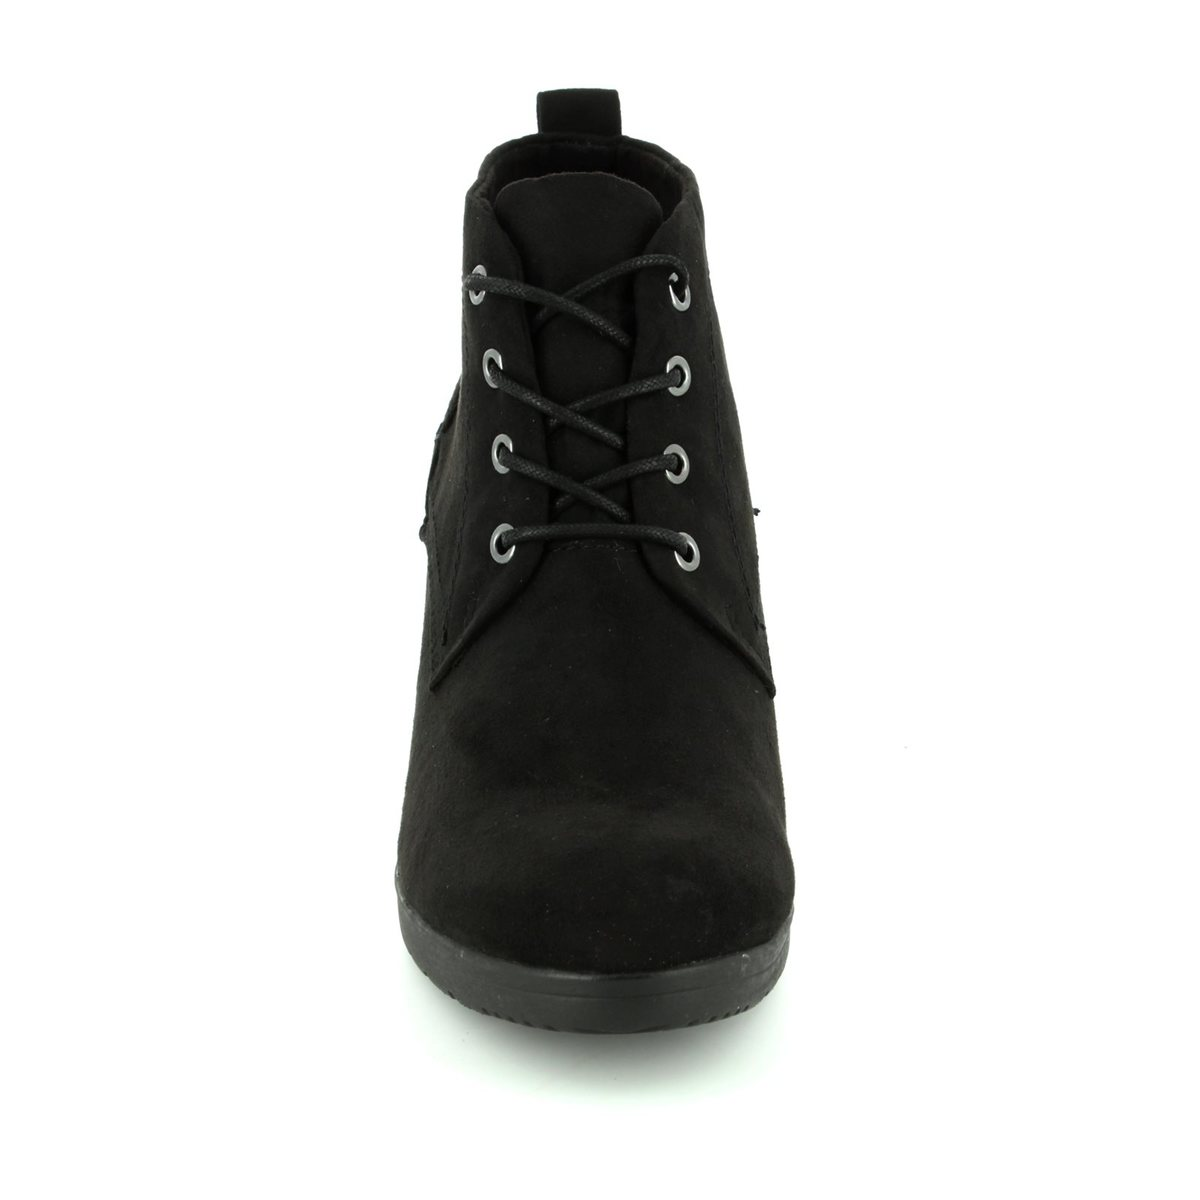 0af382d5be Marco Tozzi Ankle Boots - Black - 25111 001 RANCO